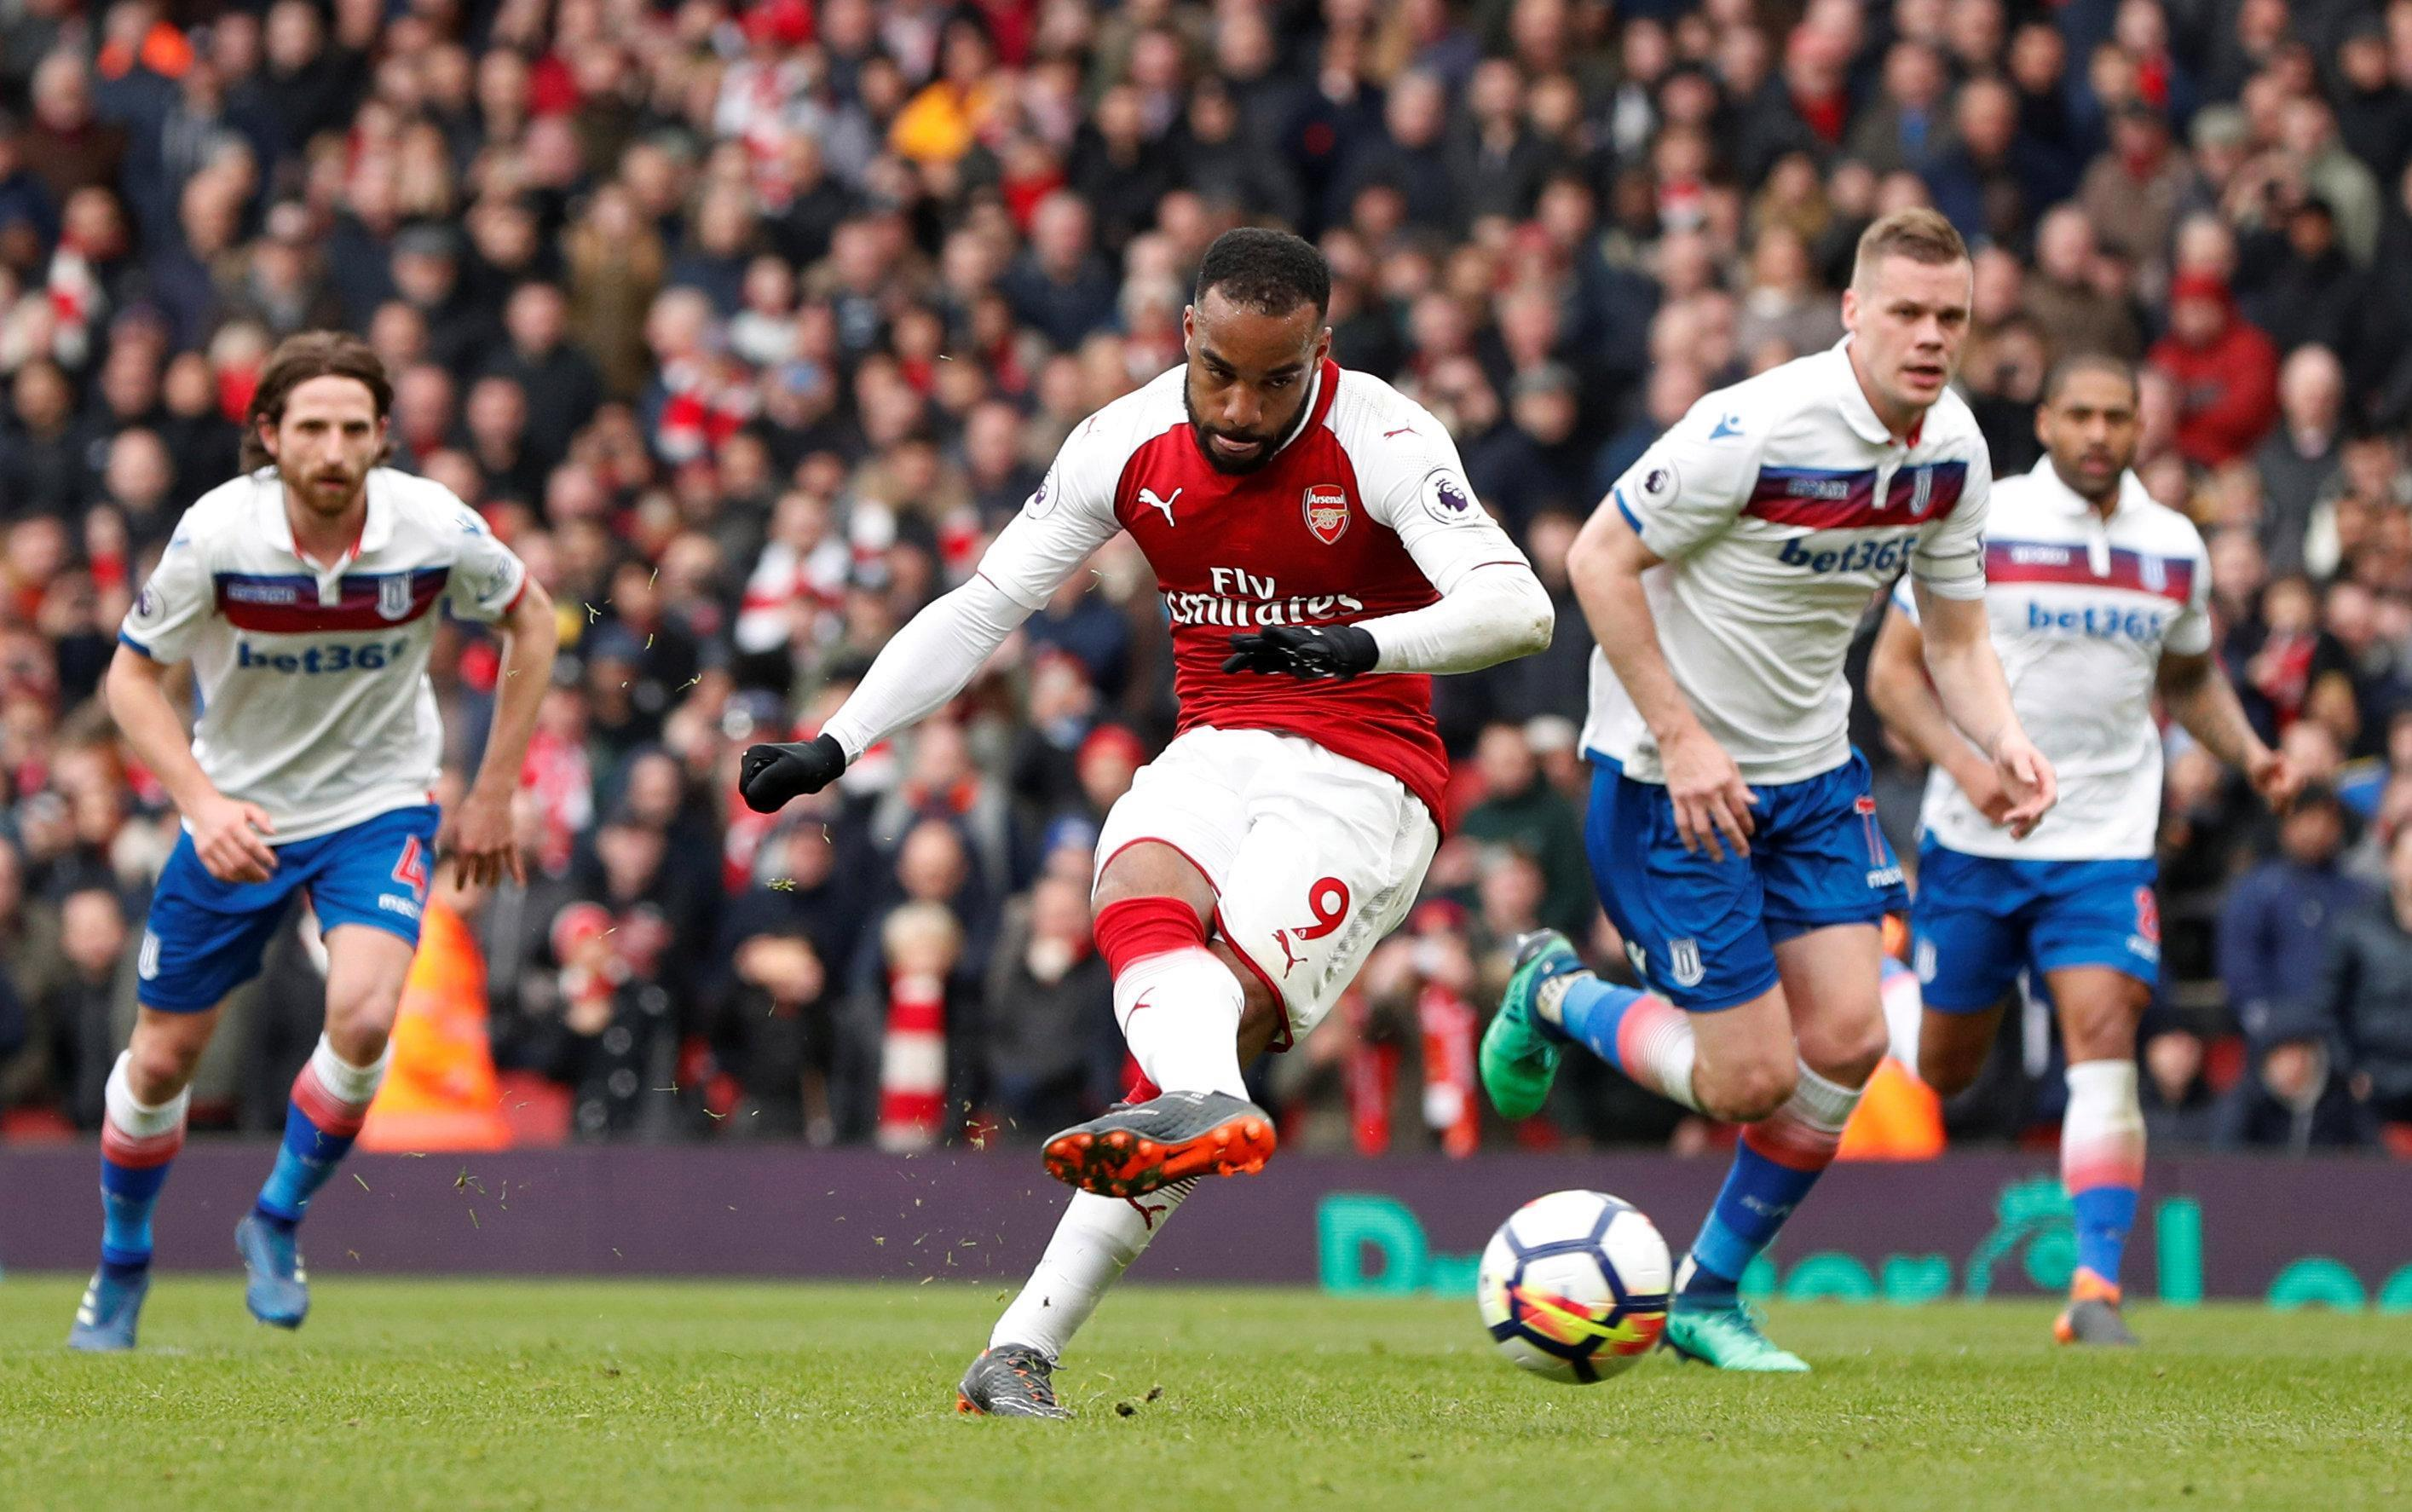 Lacazette banged in 17 goals in all competitions since joining from Lyon last summer